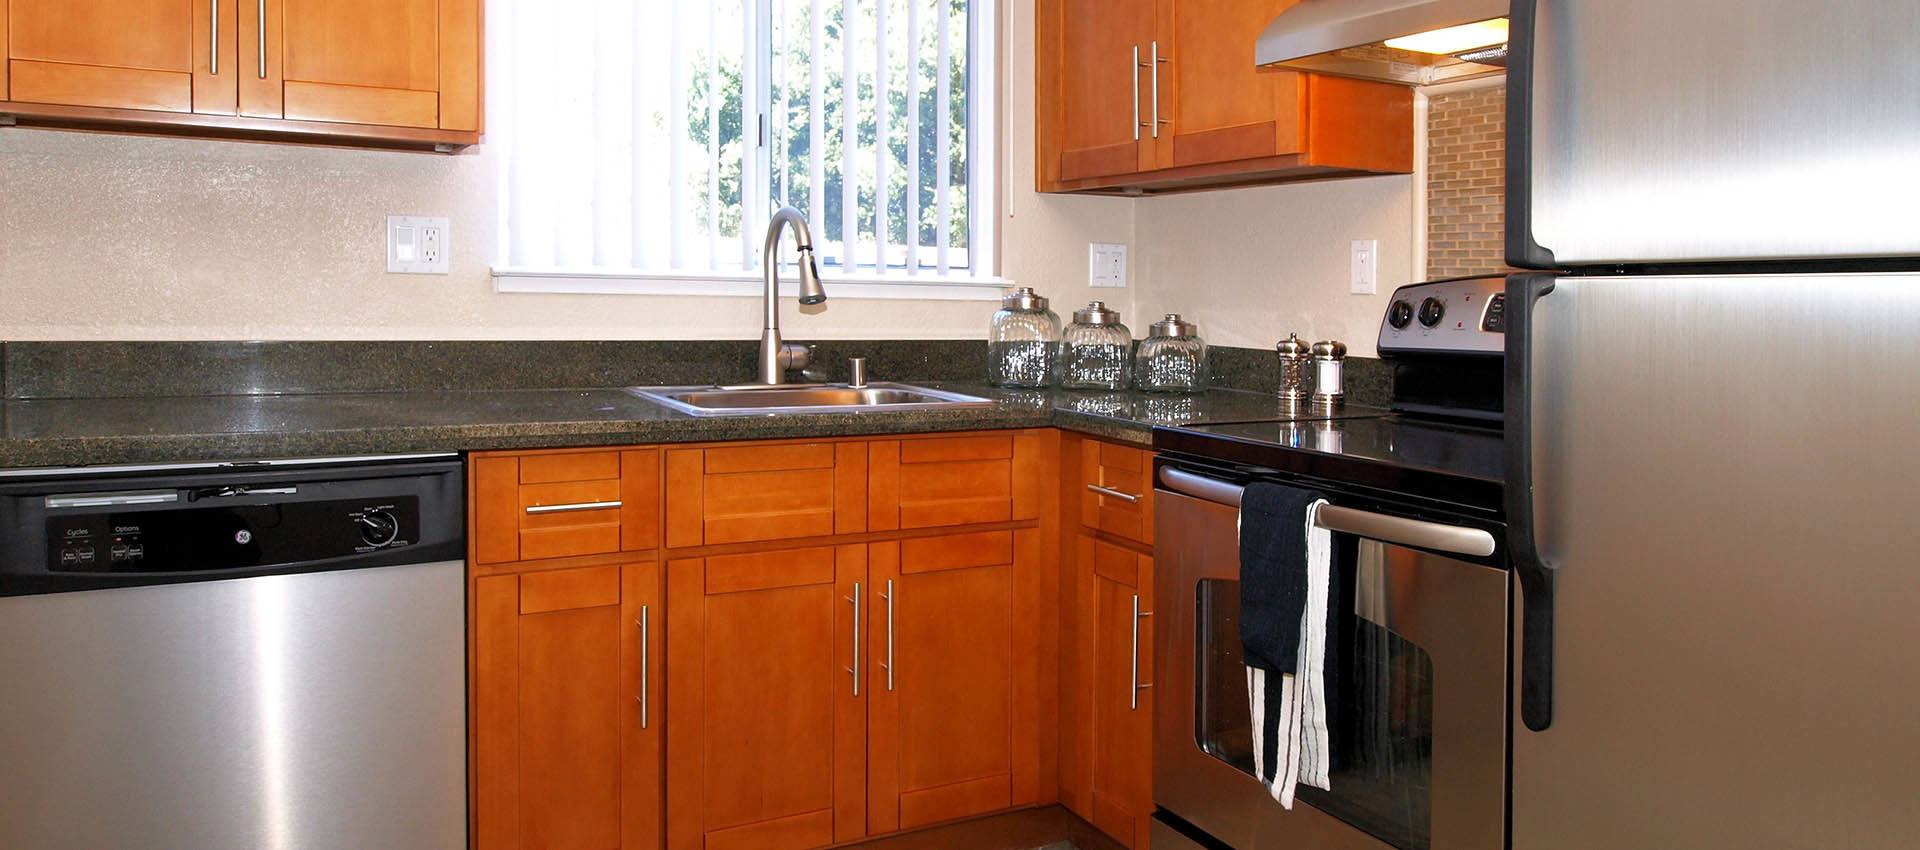 Kitchen at Spring Lake Apartment Homes in Santa Rosa, California